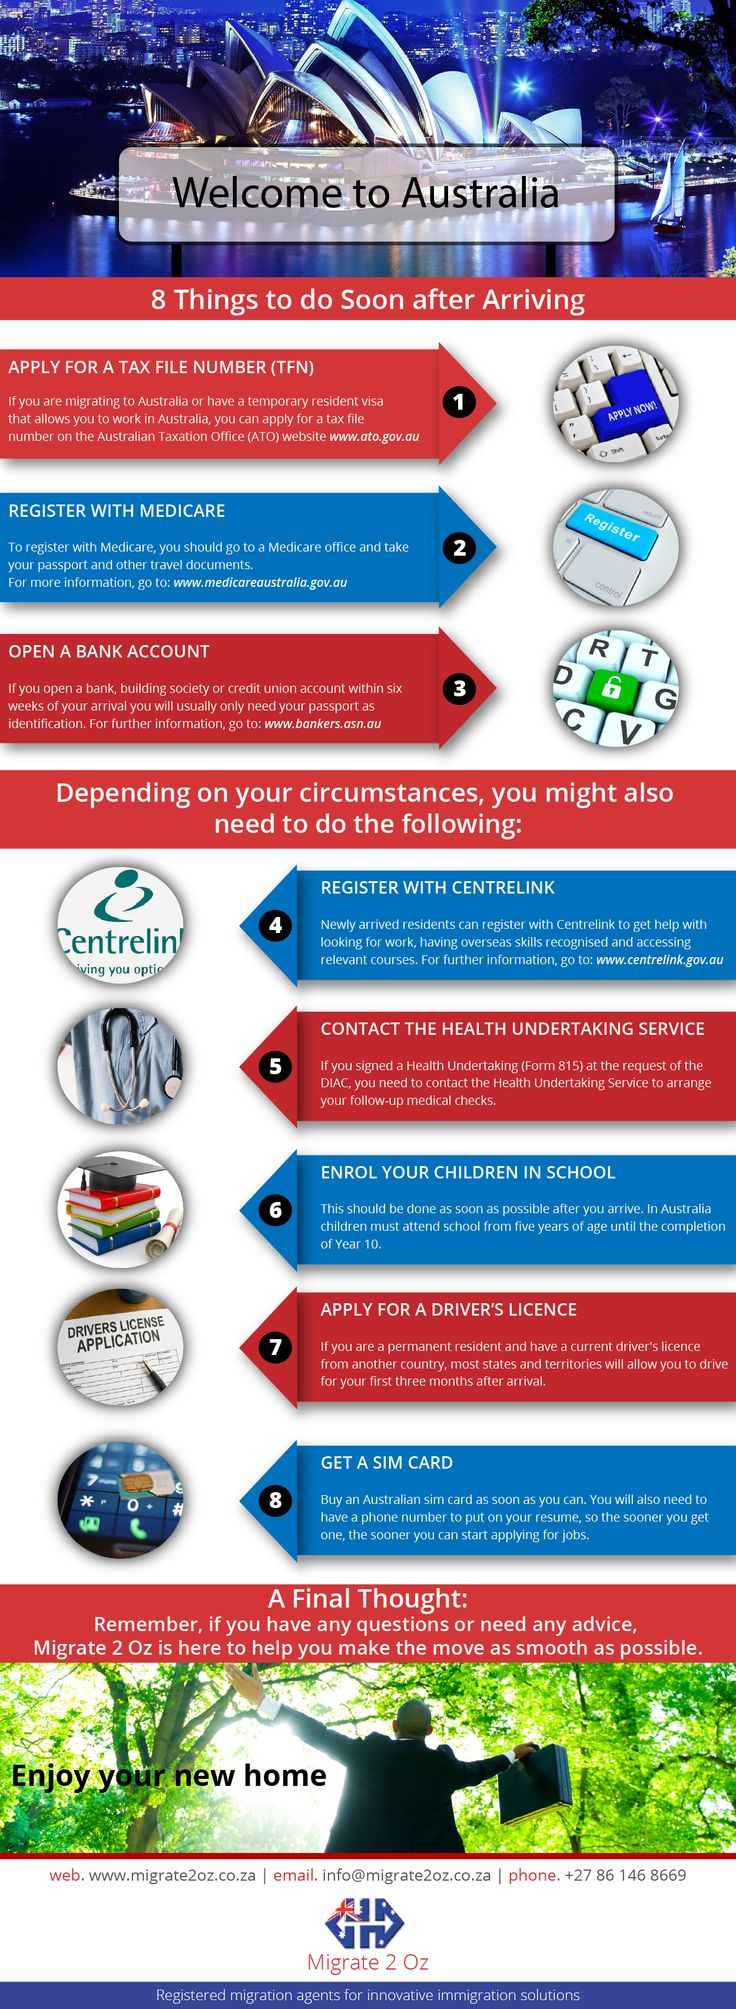 INFOGRAPHIC: 8 things to do soon after arriving in Australia www.migrate2oz.co.za